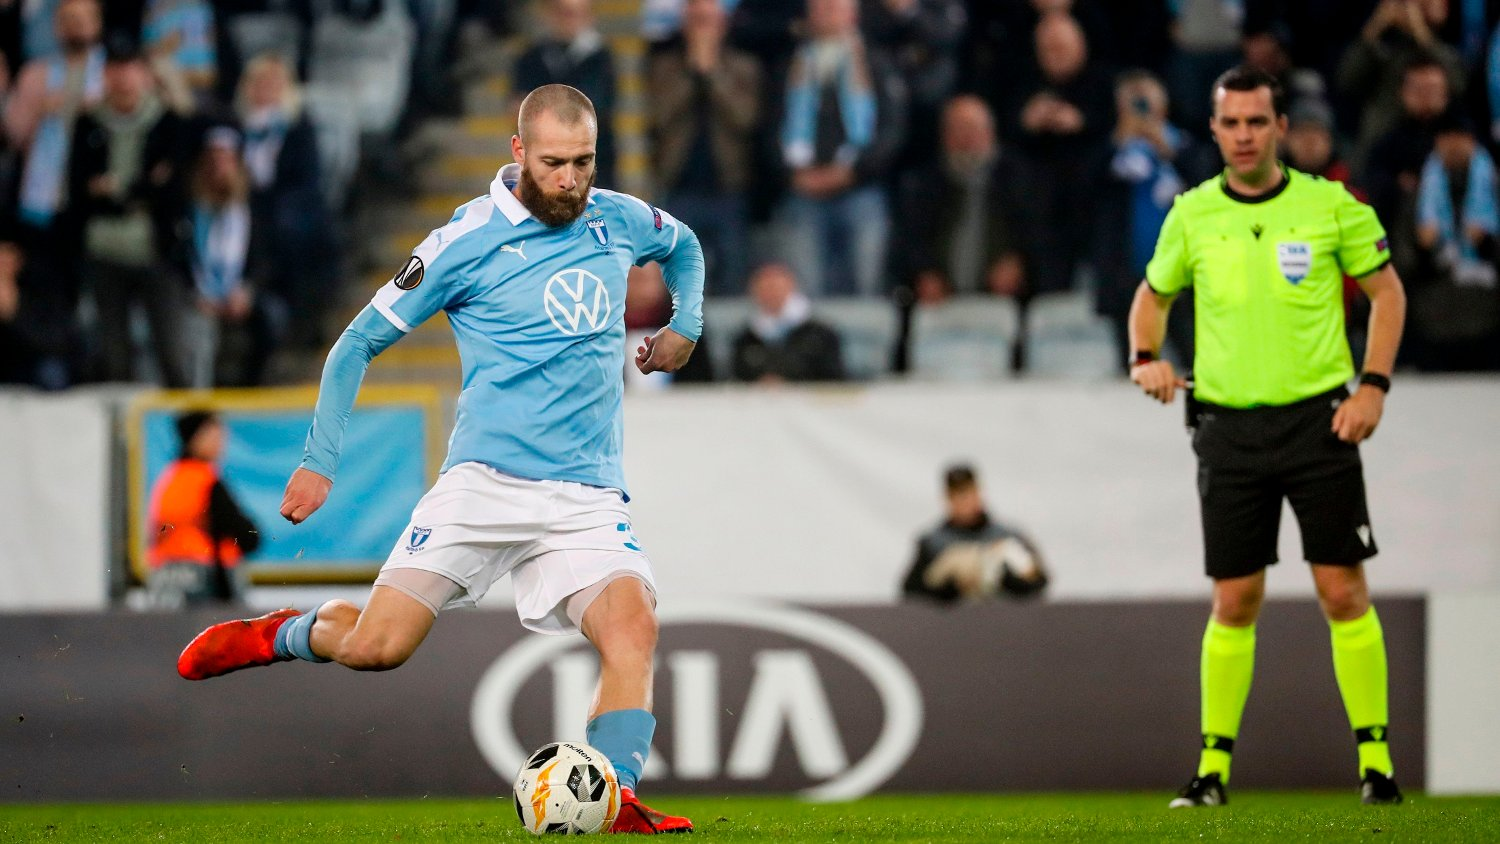 Malmo FF's Norwegian forward Jo Inge Berget scores 1-0 from the penalty spot during the UEFA Europa League group B football match between Malmo FF and FC Lugano at Malmo Stadium on October 24, 2019. / Sweden OUT